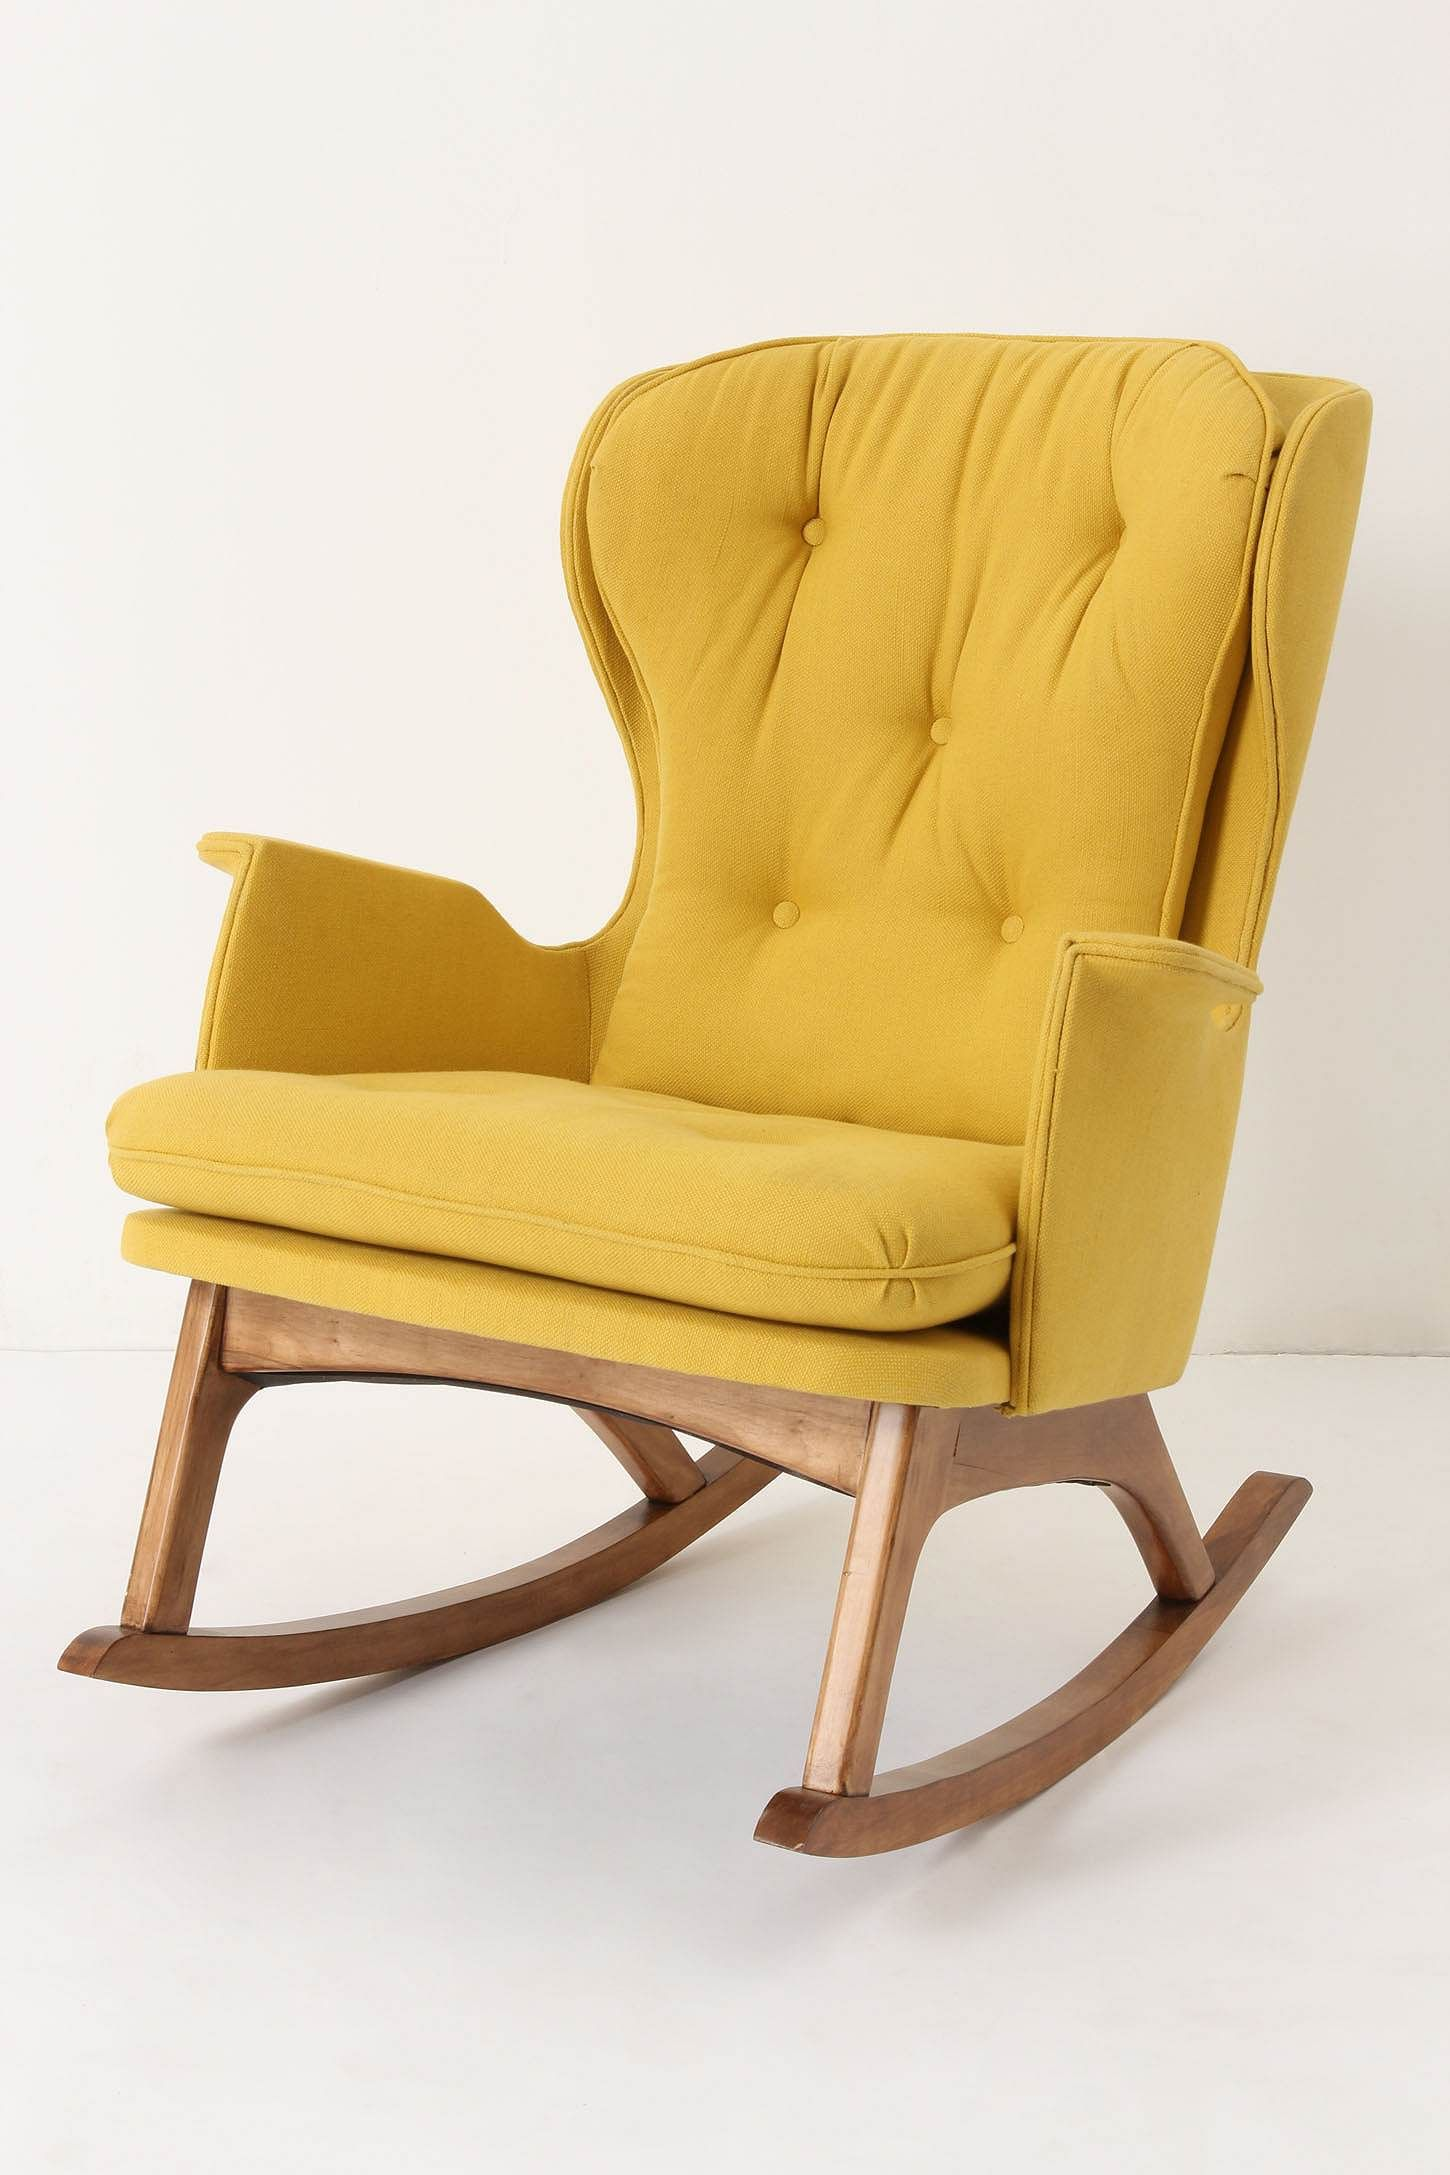 une chaise bascule jaune assise pinterest chaises. Black Bedroom Furniture Sets. Home Design Ideas